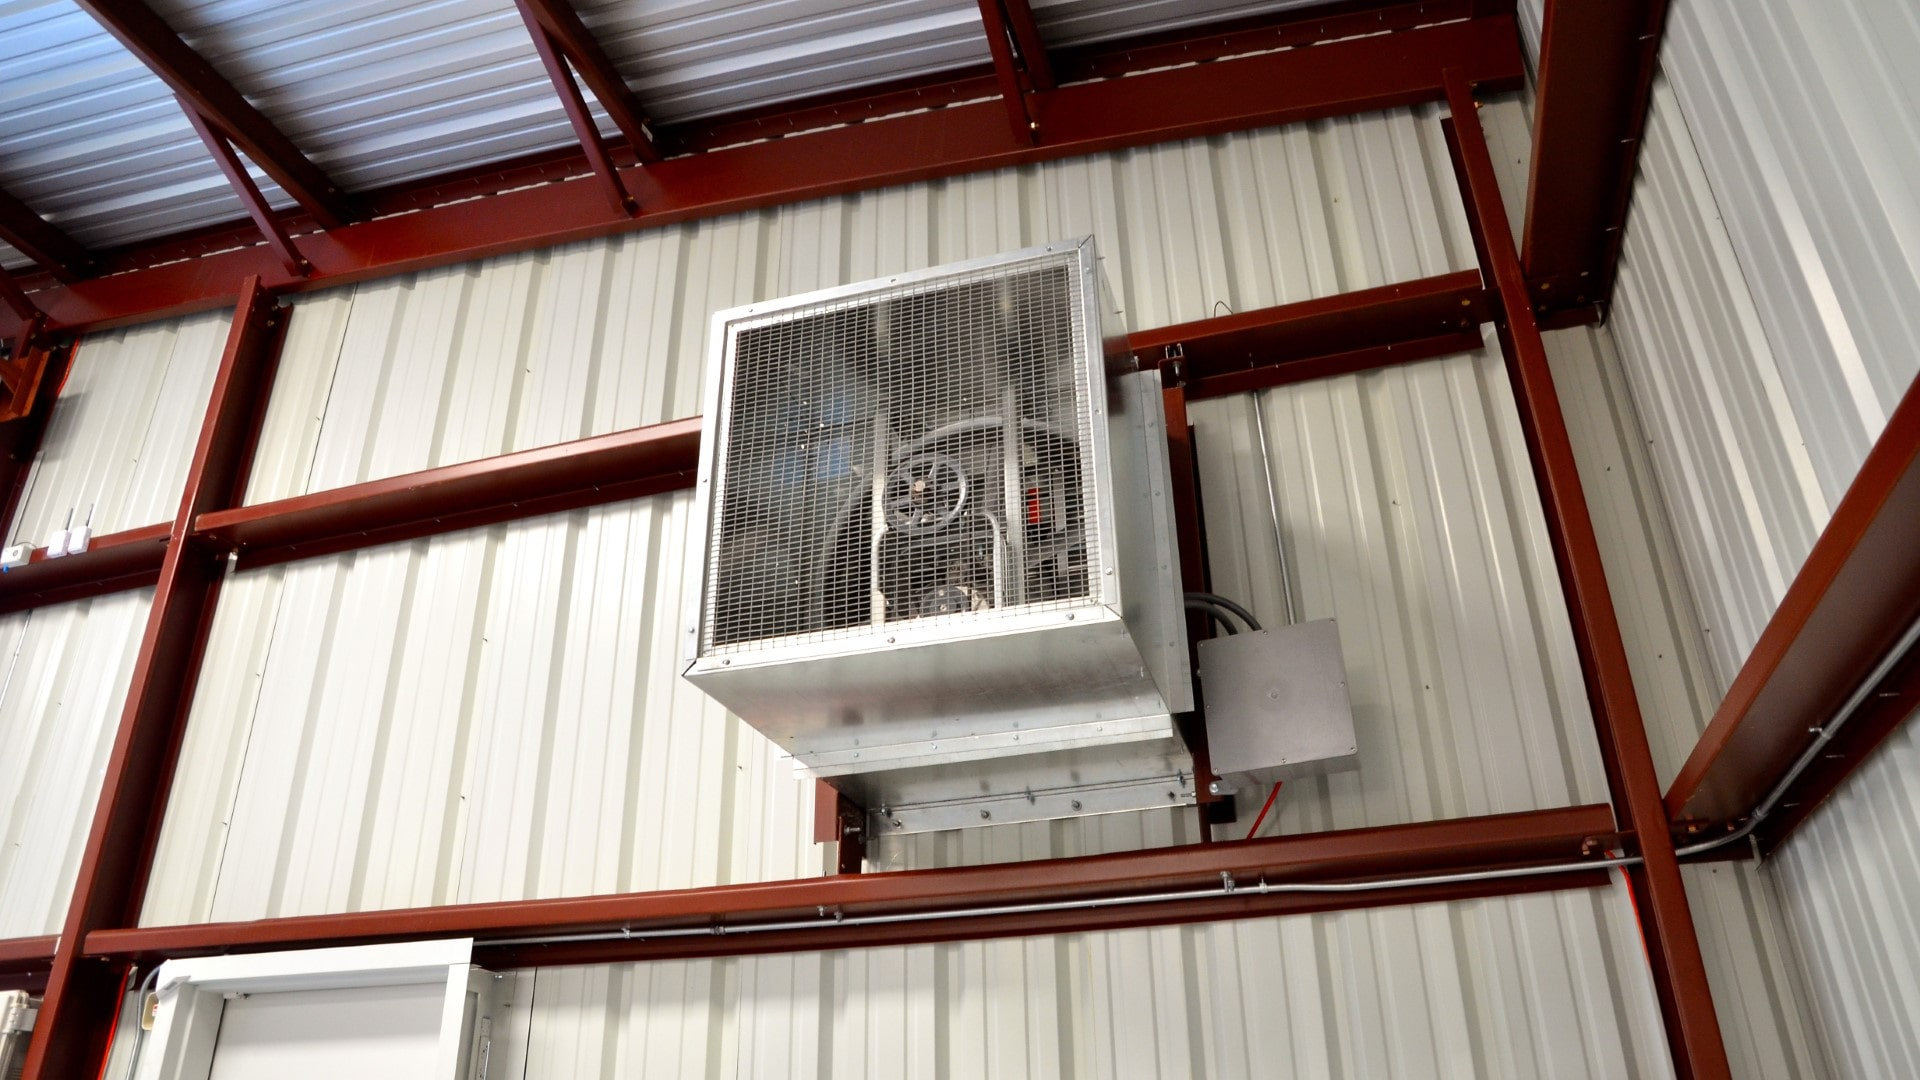 A metal building with exhaust fan, view from inside.